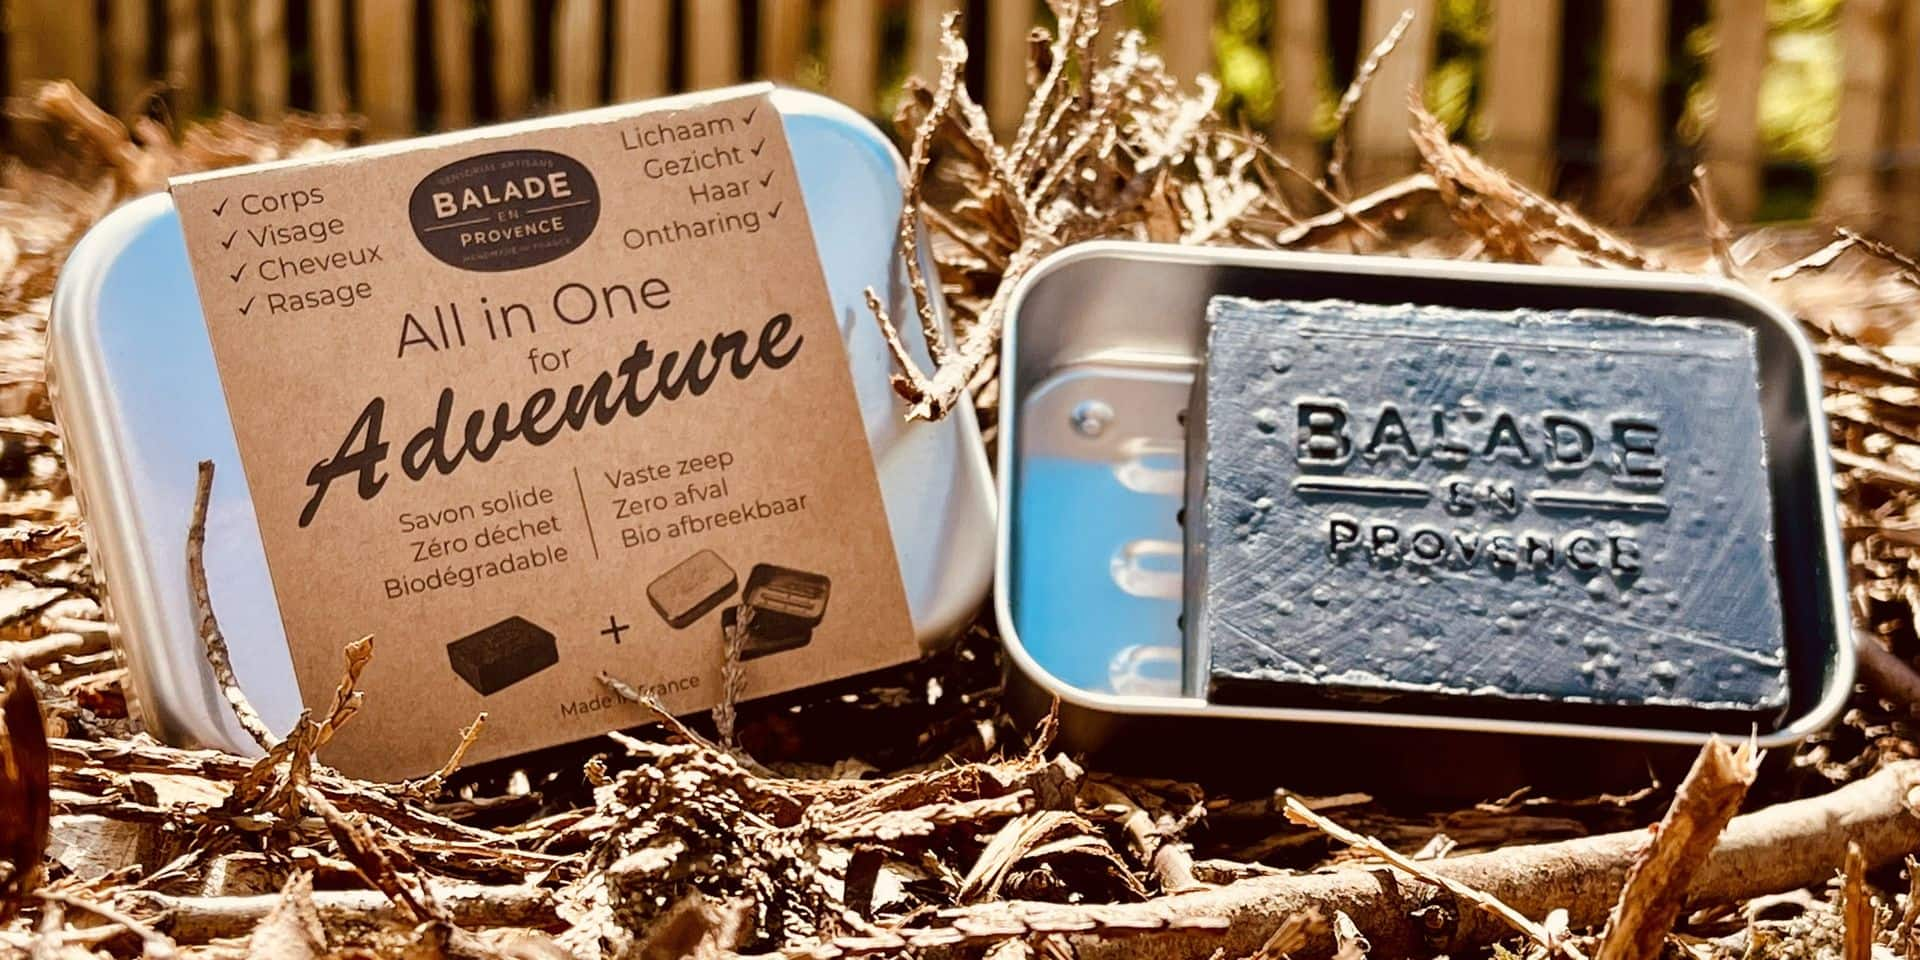 Concours: remportez le kit All in One for Adventure !